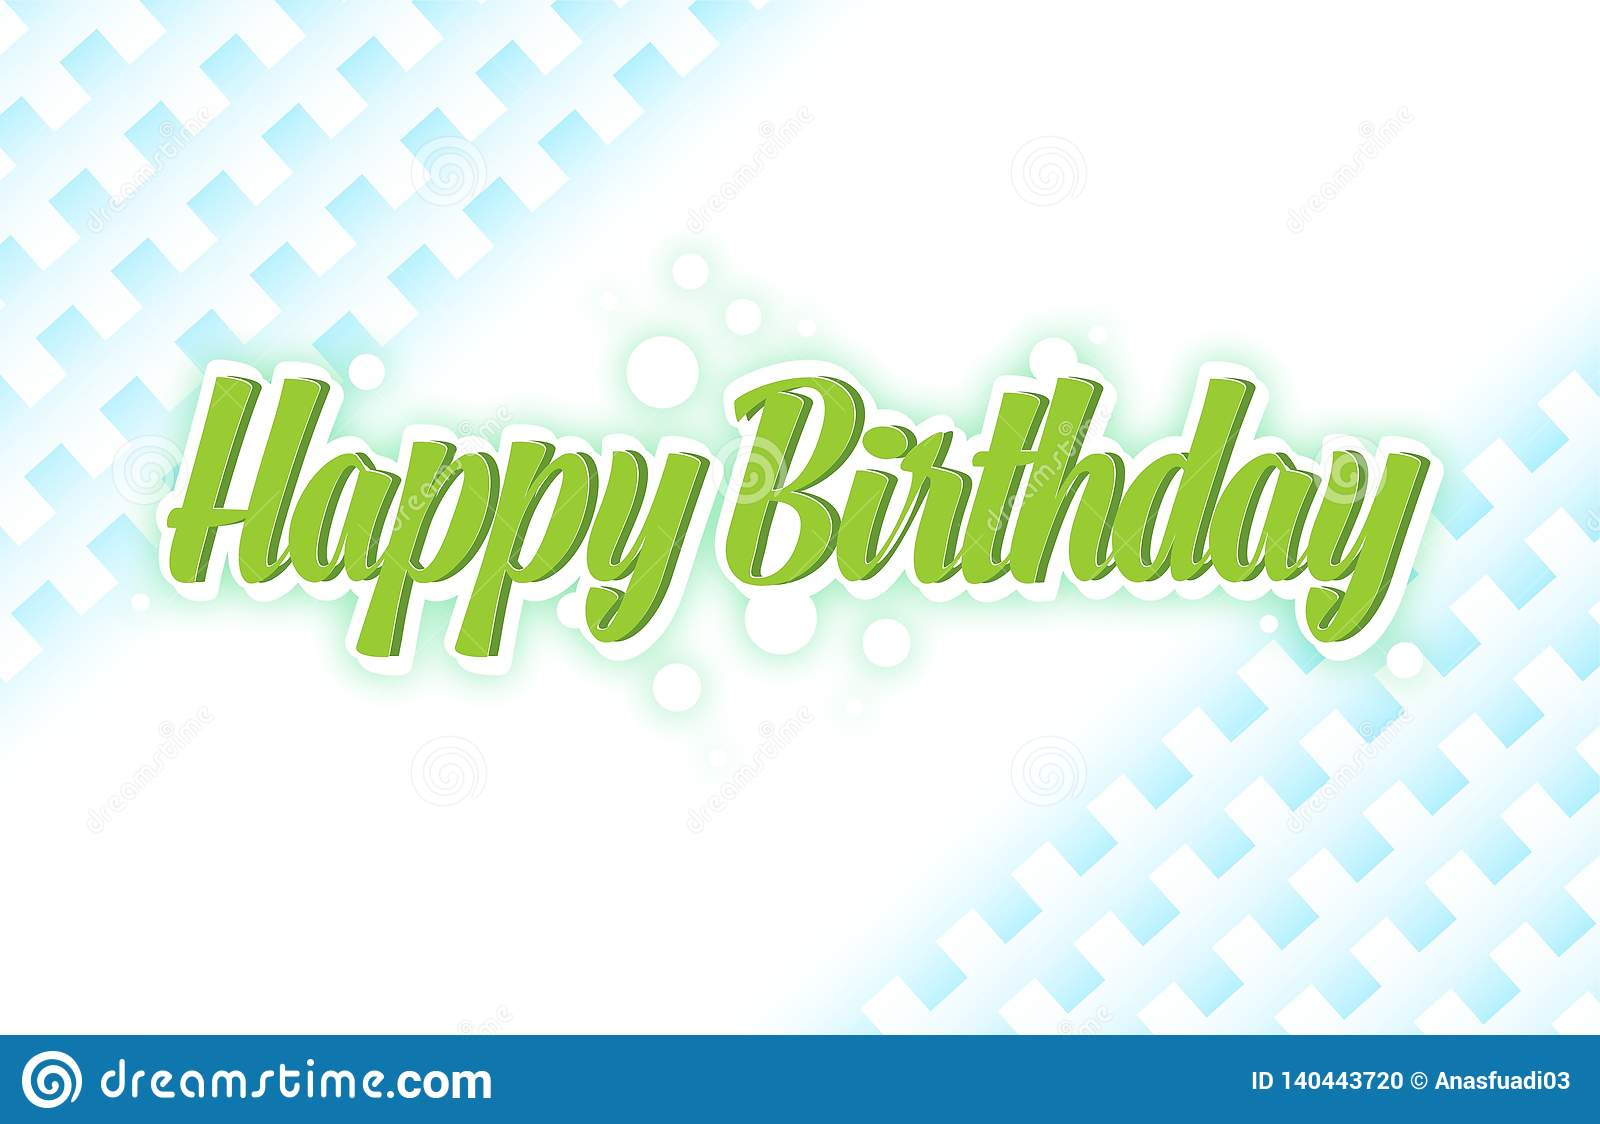 Happy Birthday Card Simple Typography In A Green Design For Print Greetings Shirt Banner Poster